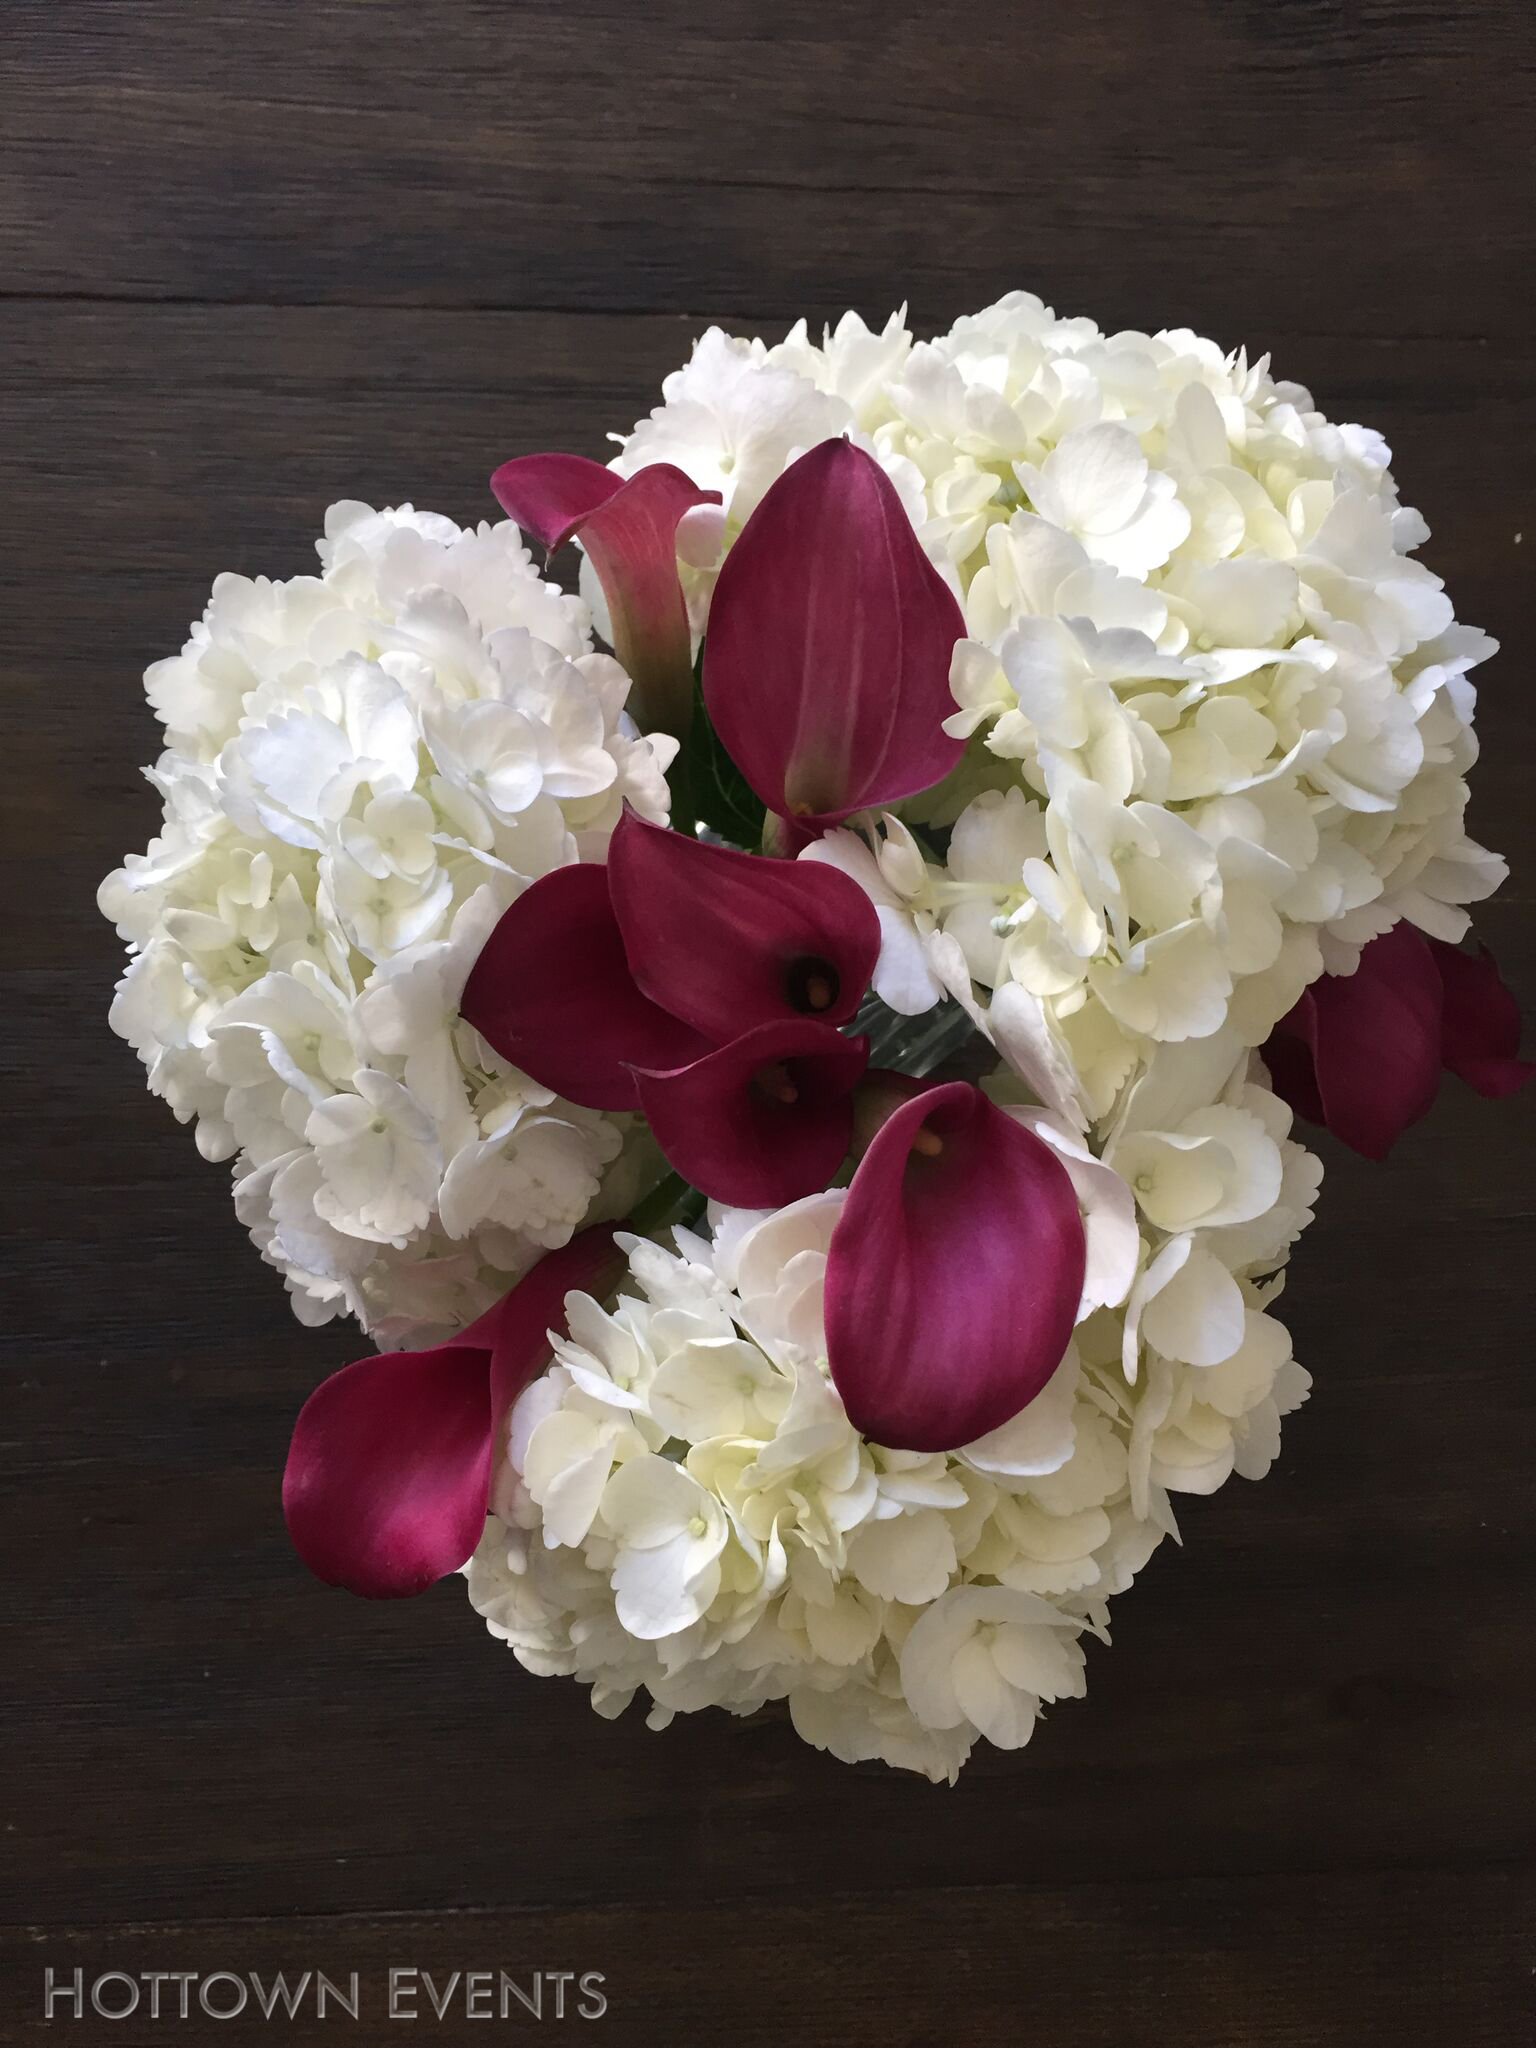 <h5>Peonies & Lily table top arrangement</h5>